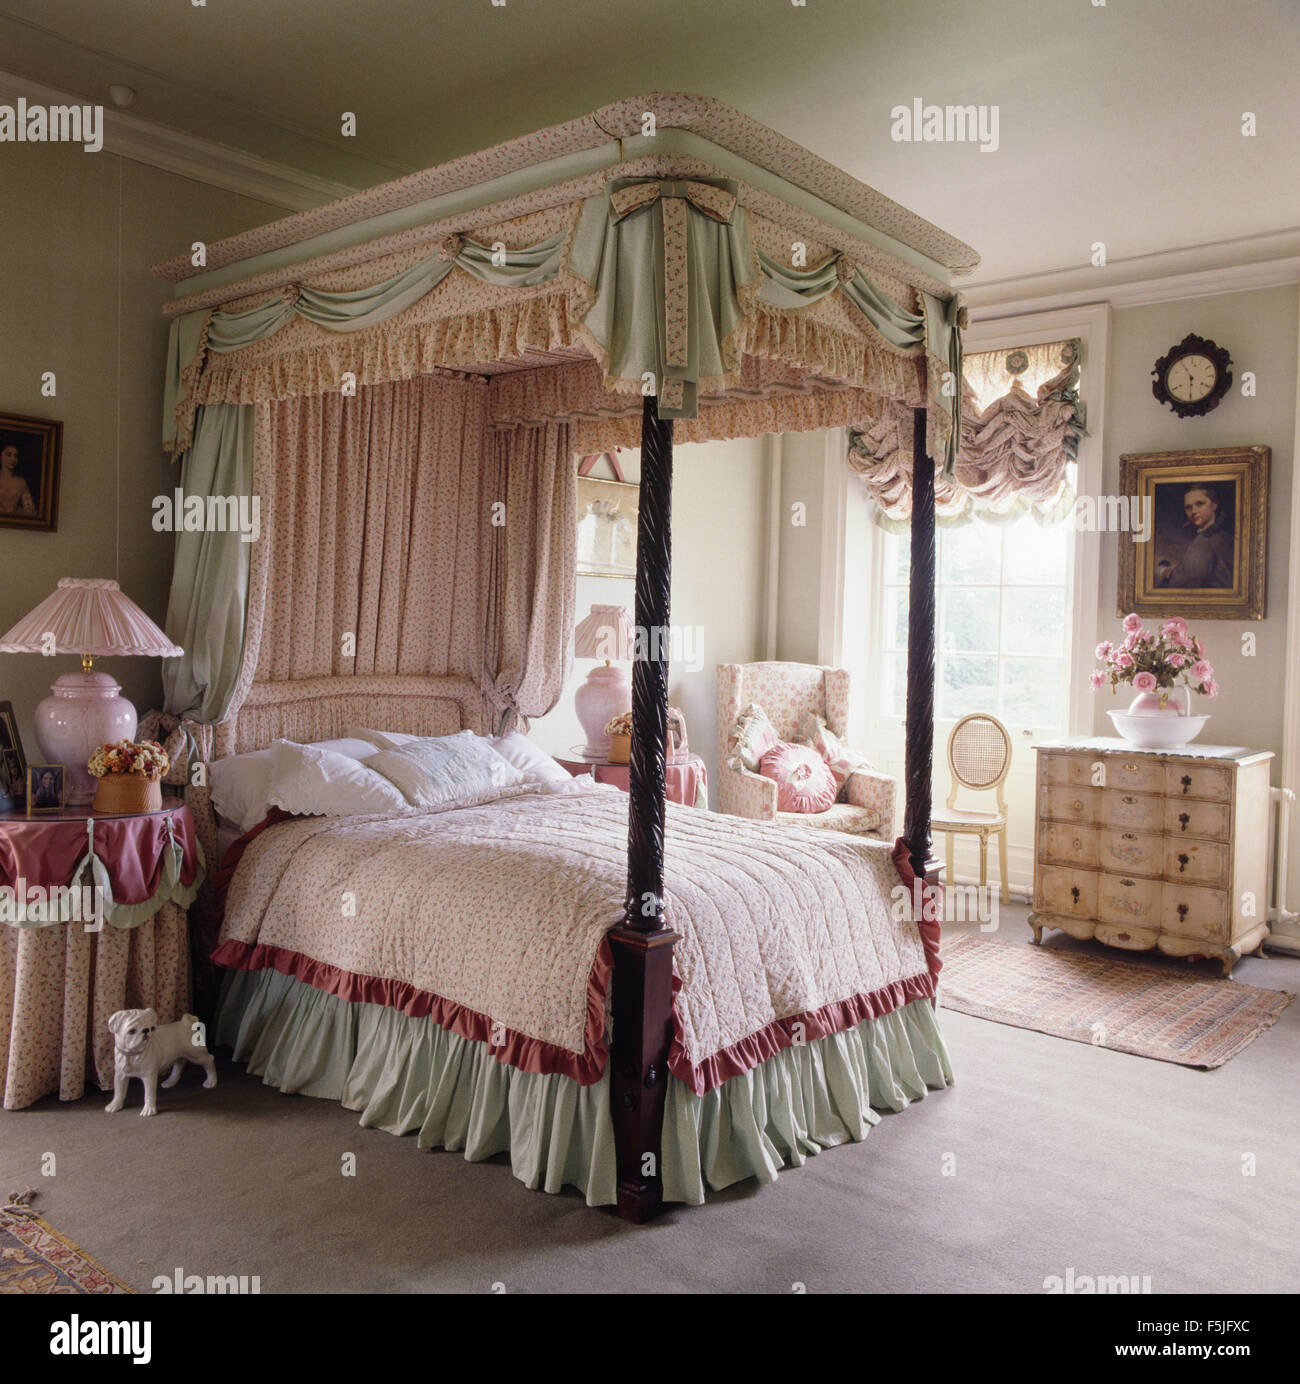 Pale Green Bedroom Pale Green And Pink Drapes On A Four Poster Bed With Pale Green